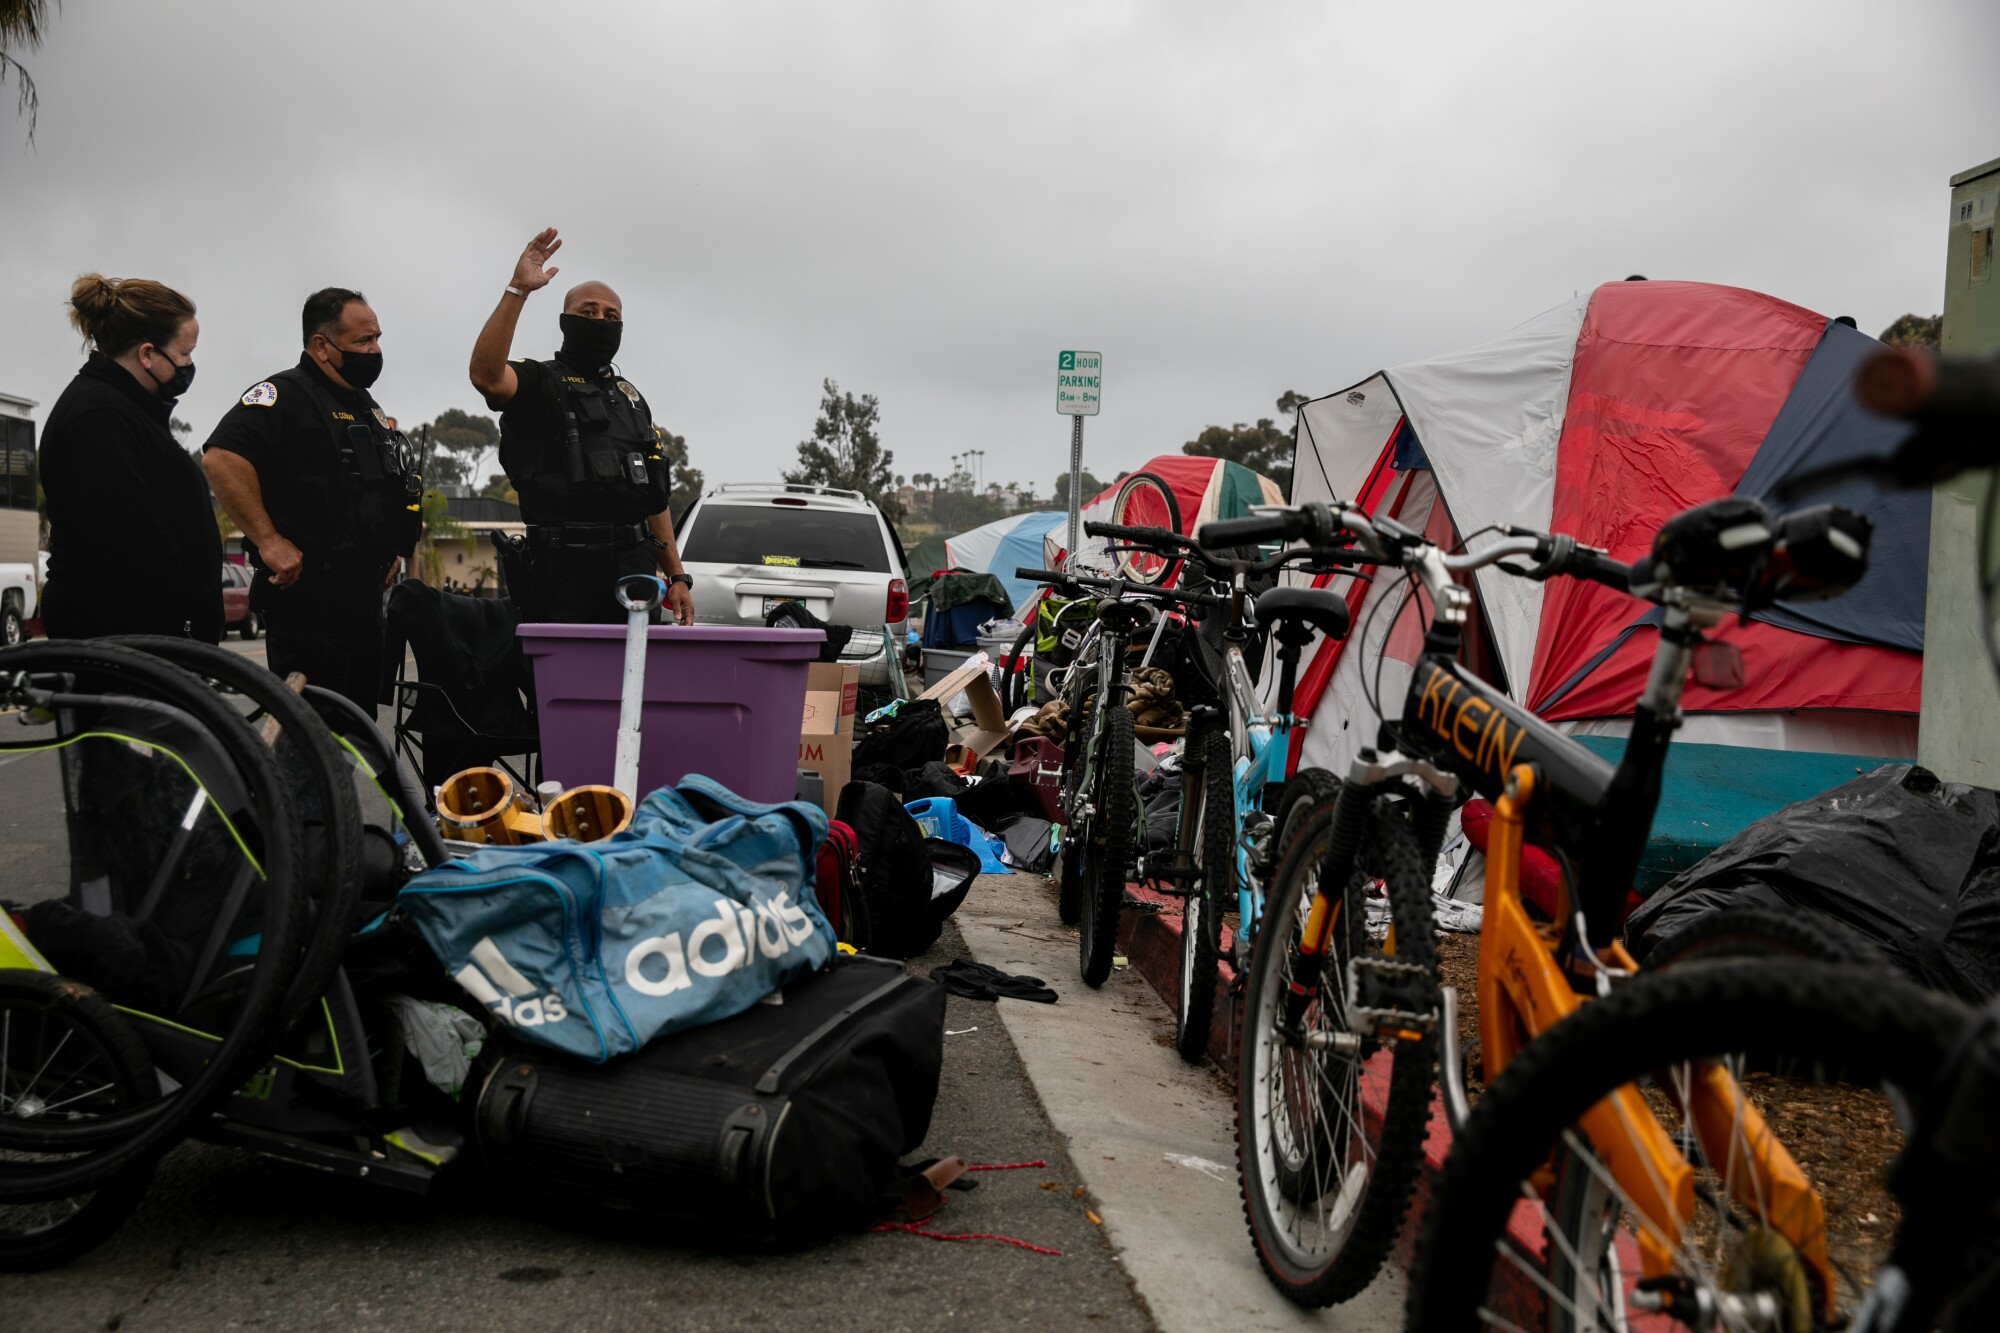 Oceanside police speak to Sean M. Kelley as they work to clear a homeless encampment near Oceanside Boulevard on Tuesday.